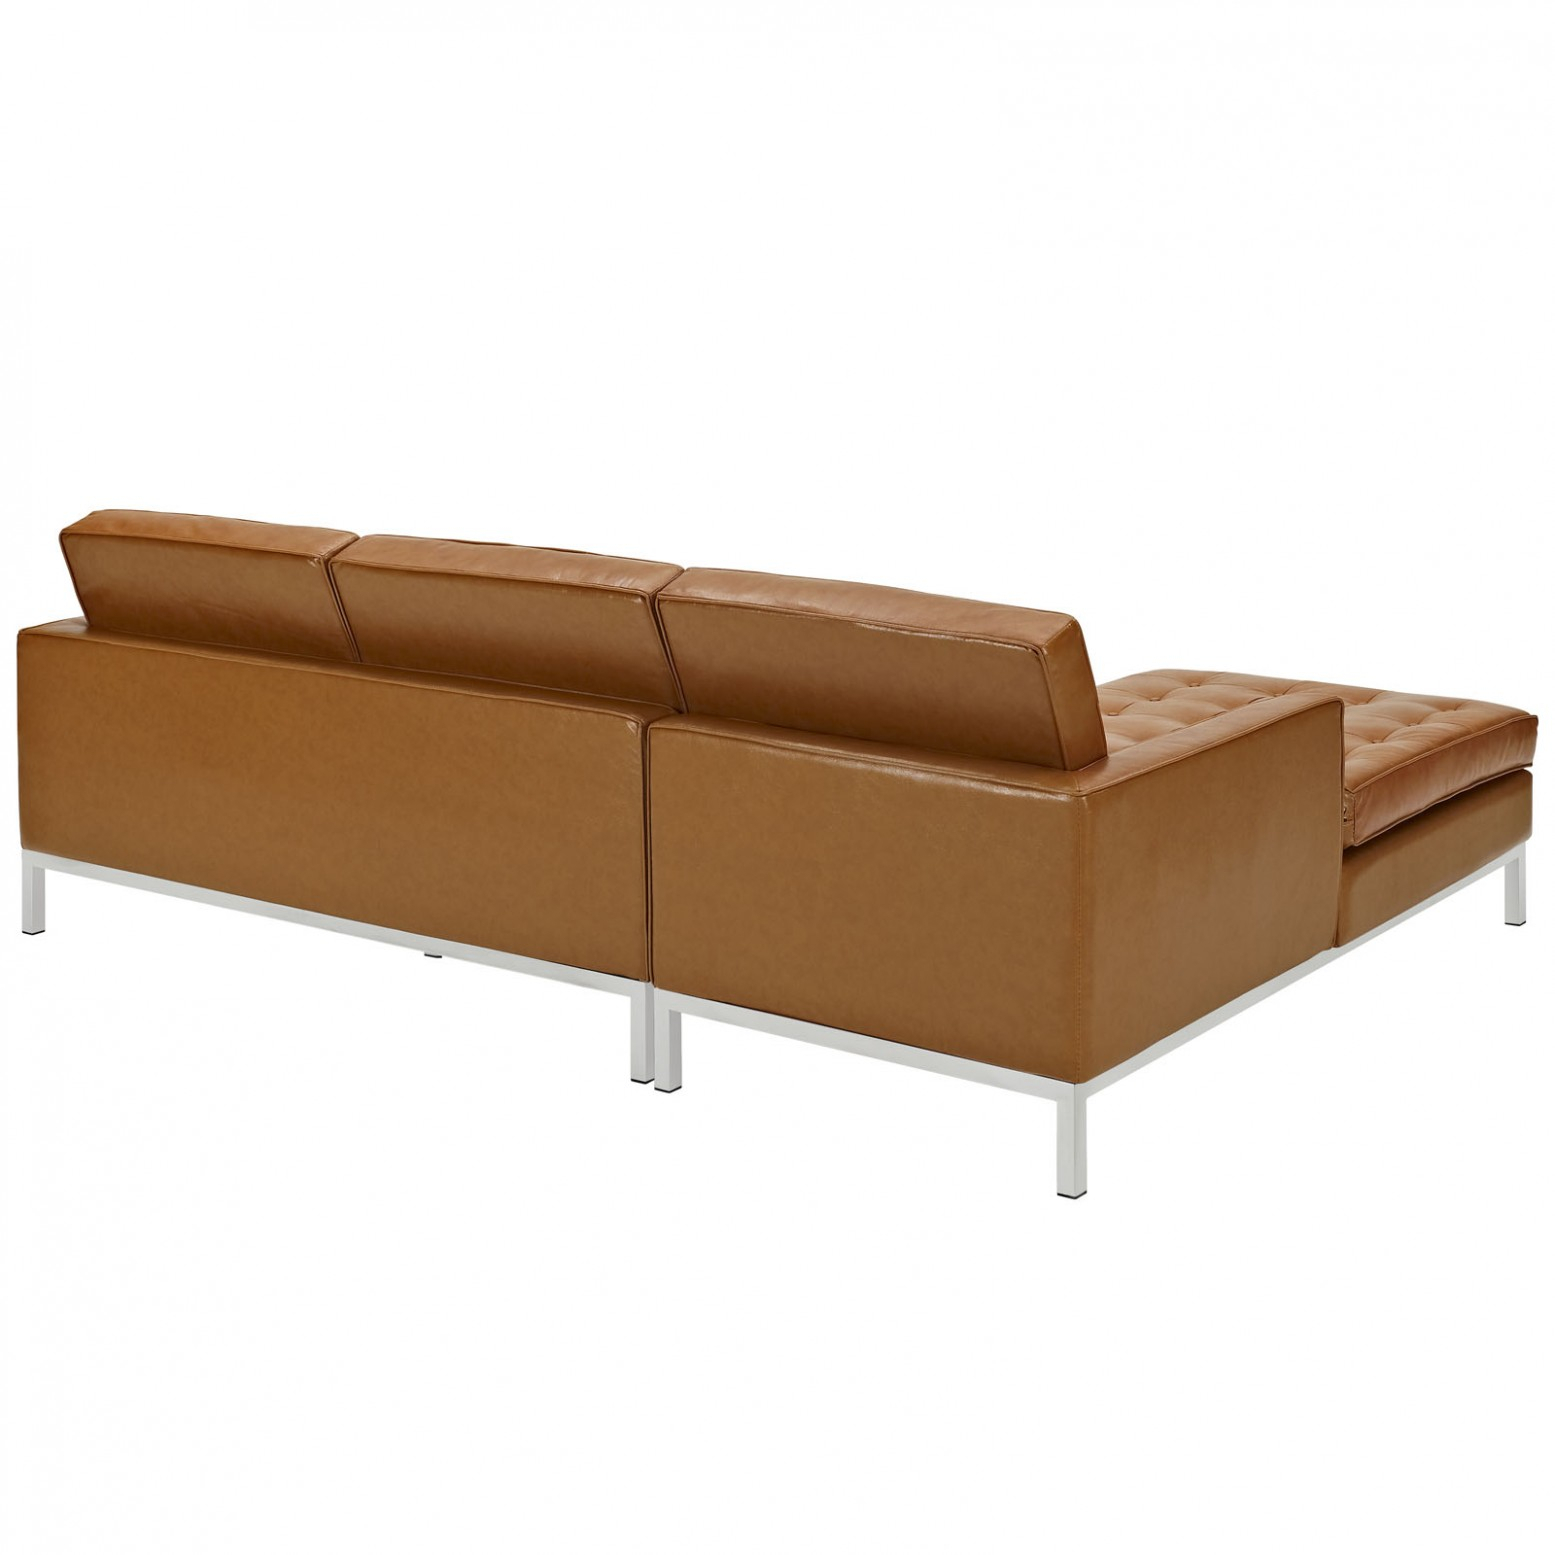 Loft Left Arm Leather Sectional Sofa, Tanmodway Furniture Pertaining To Loft Arm Sofa Chairs (View 25 of 25)